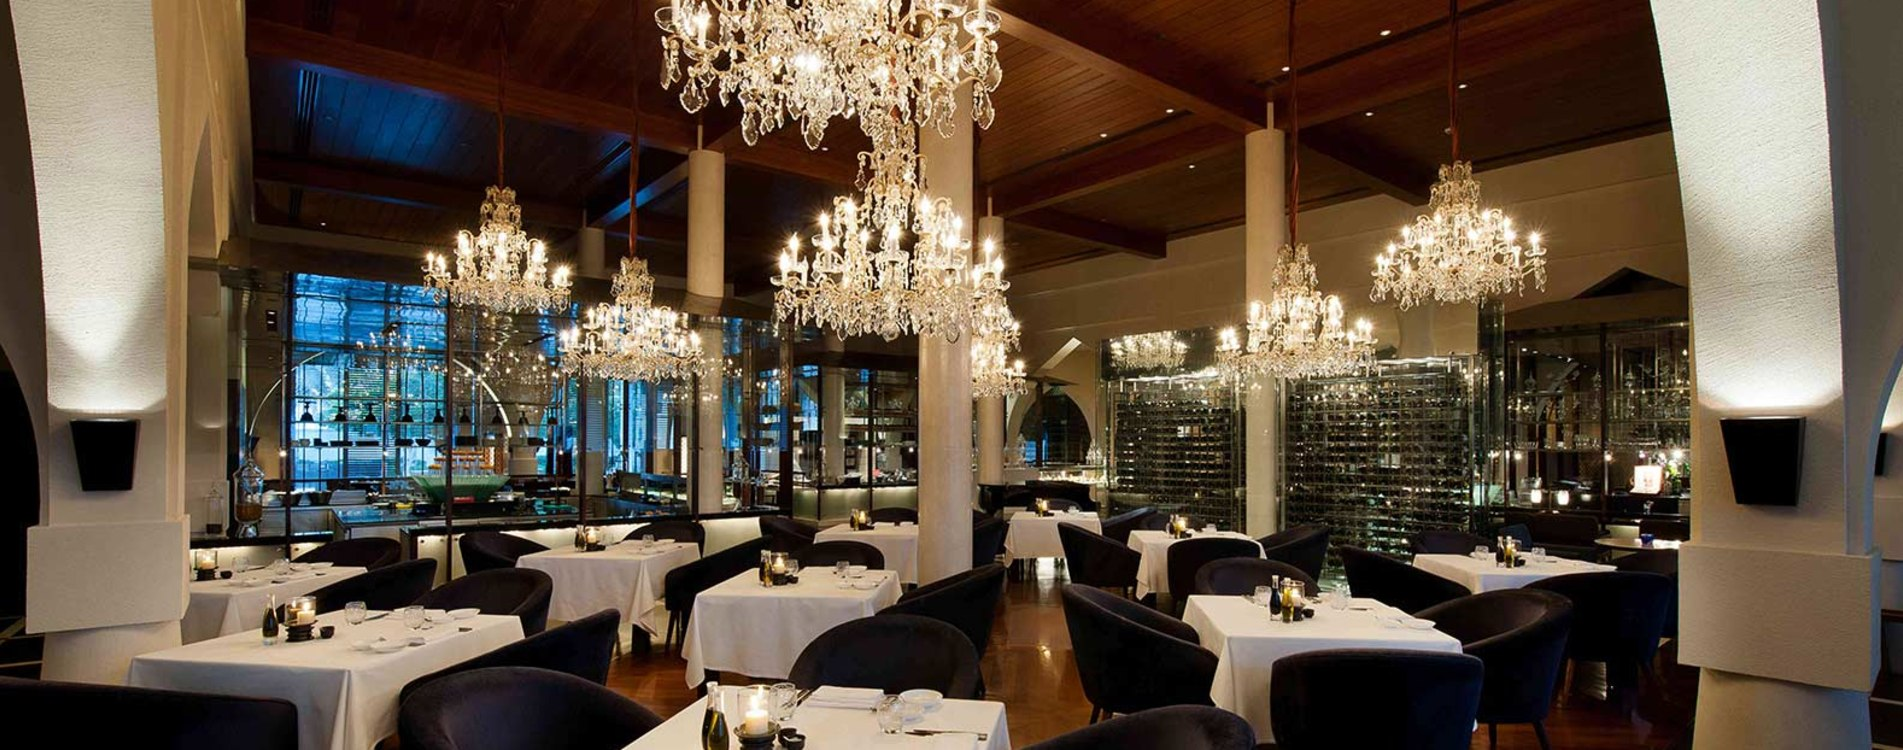 Chedi-Muscat-Dining-Restaurant.jpg